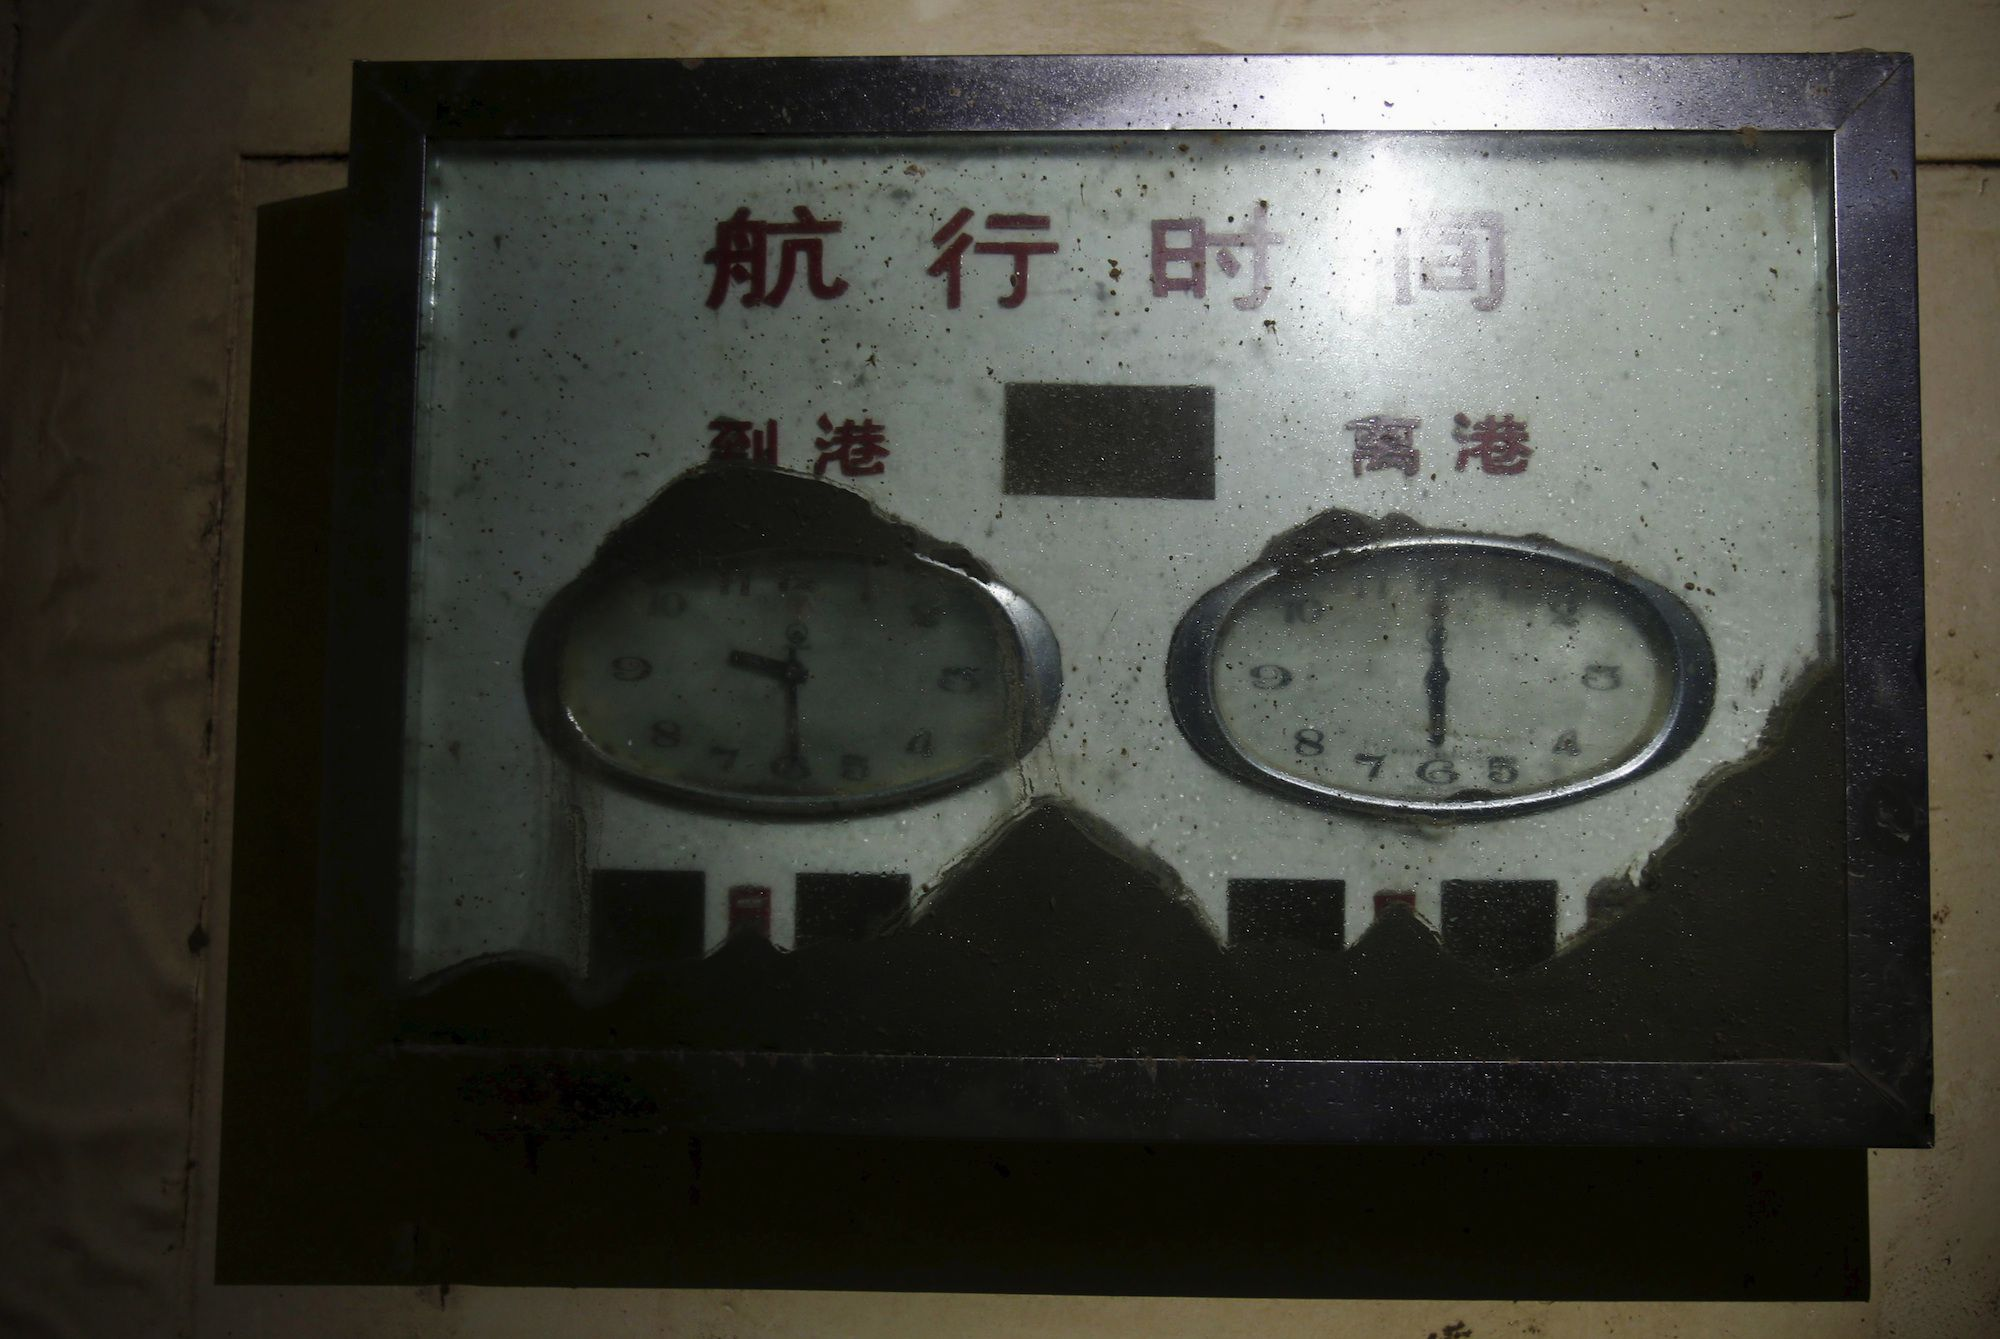 "Clocks at the passengers' hall are seen inside the Eastern Star cruise ship, which capsized on the Jianli section of the Yangtze River, Hubei province, June 7, 2015. The Chinese characters on top of the clocks read ""Voyage Schedule"", ""Arrival"" and ""Departure."""